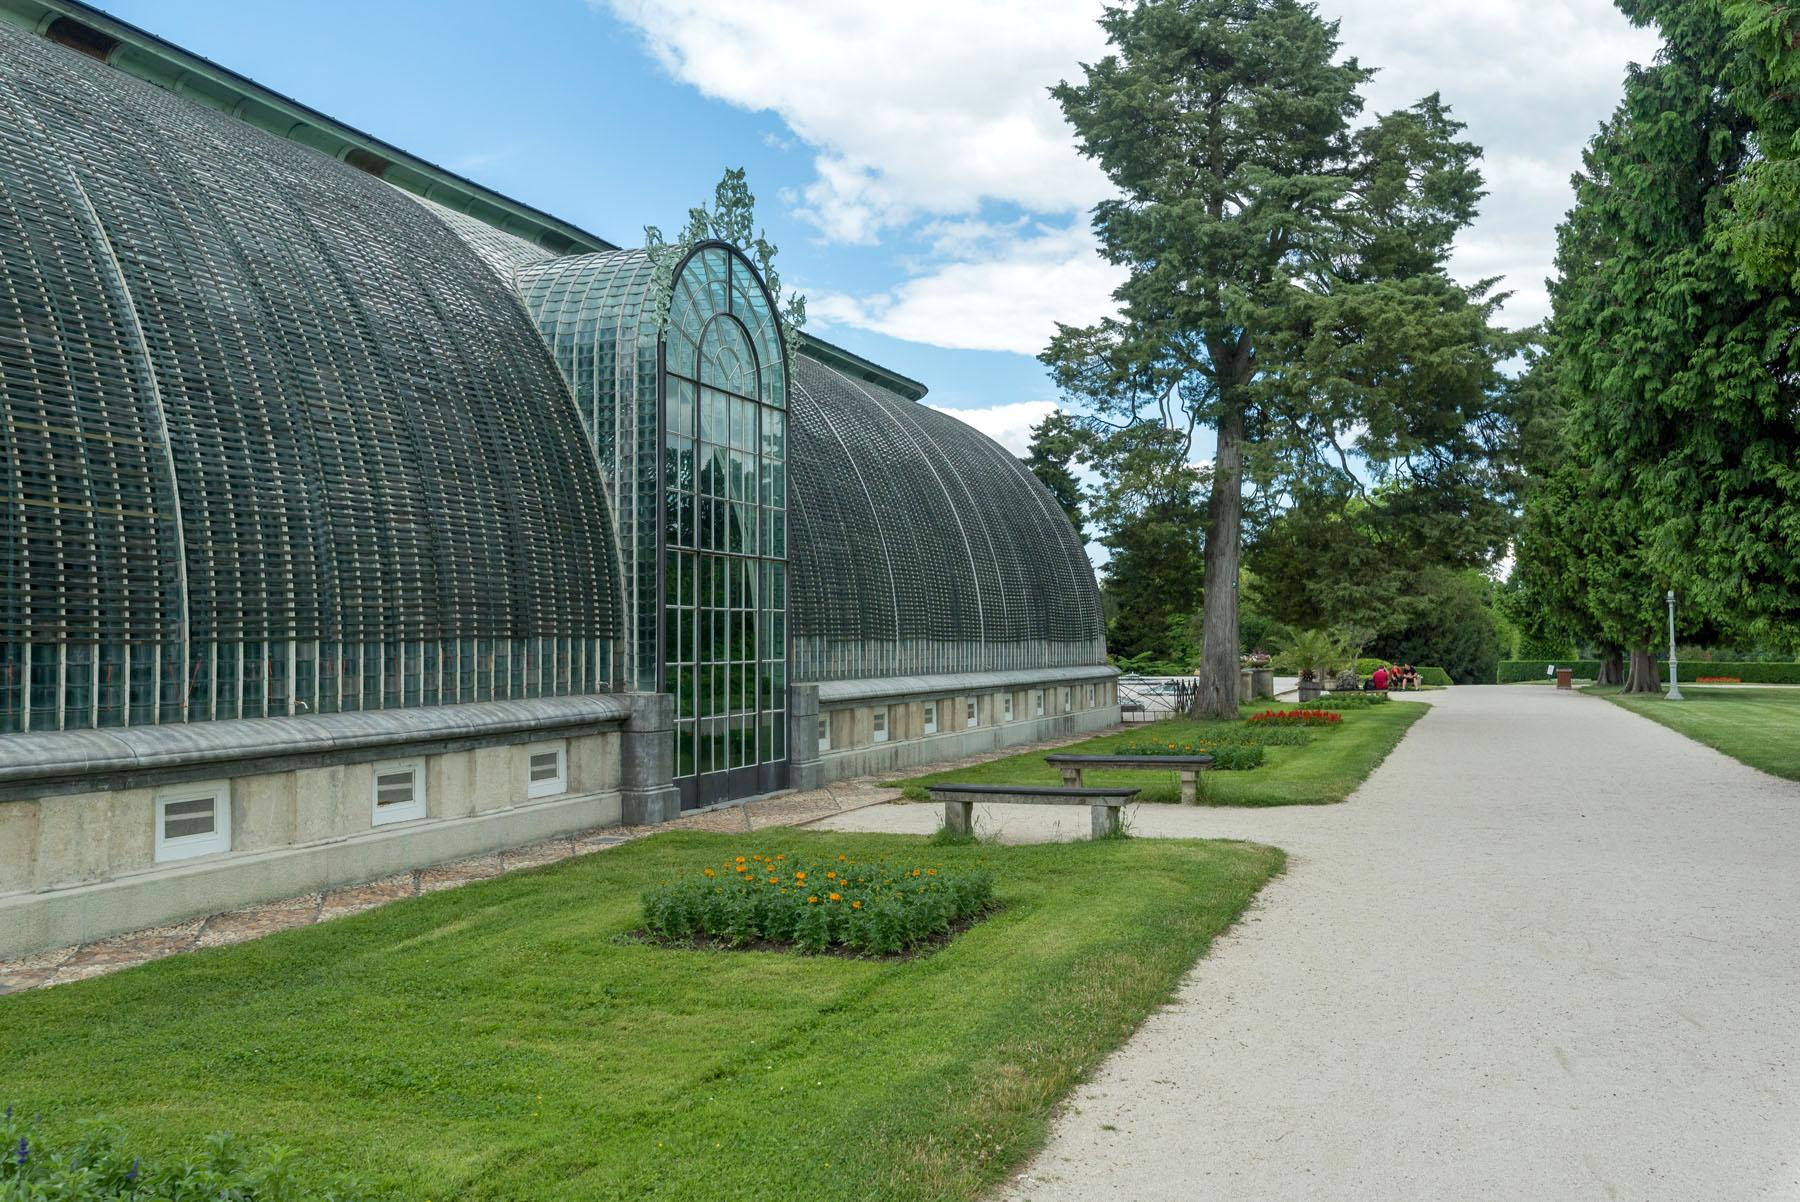 The greenhouse creates a divide between the parterre and landscaped sections of the park. About 250 species of tropical and subtropical plants are grown inside. – © Archive of Lednice Castle